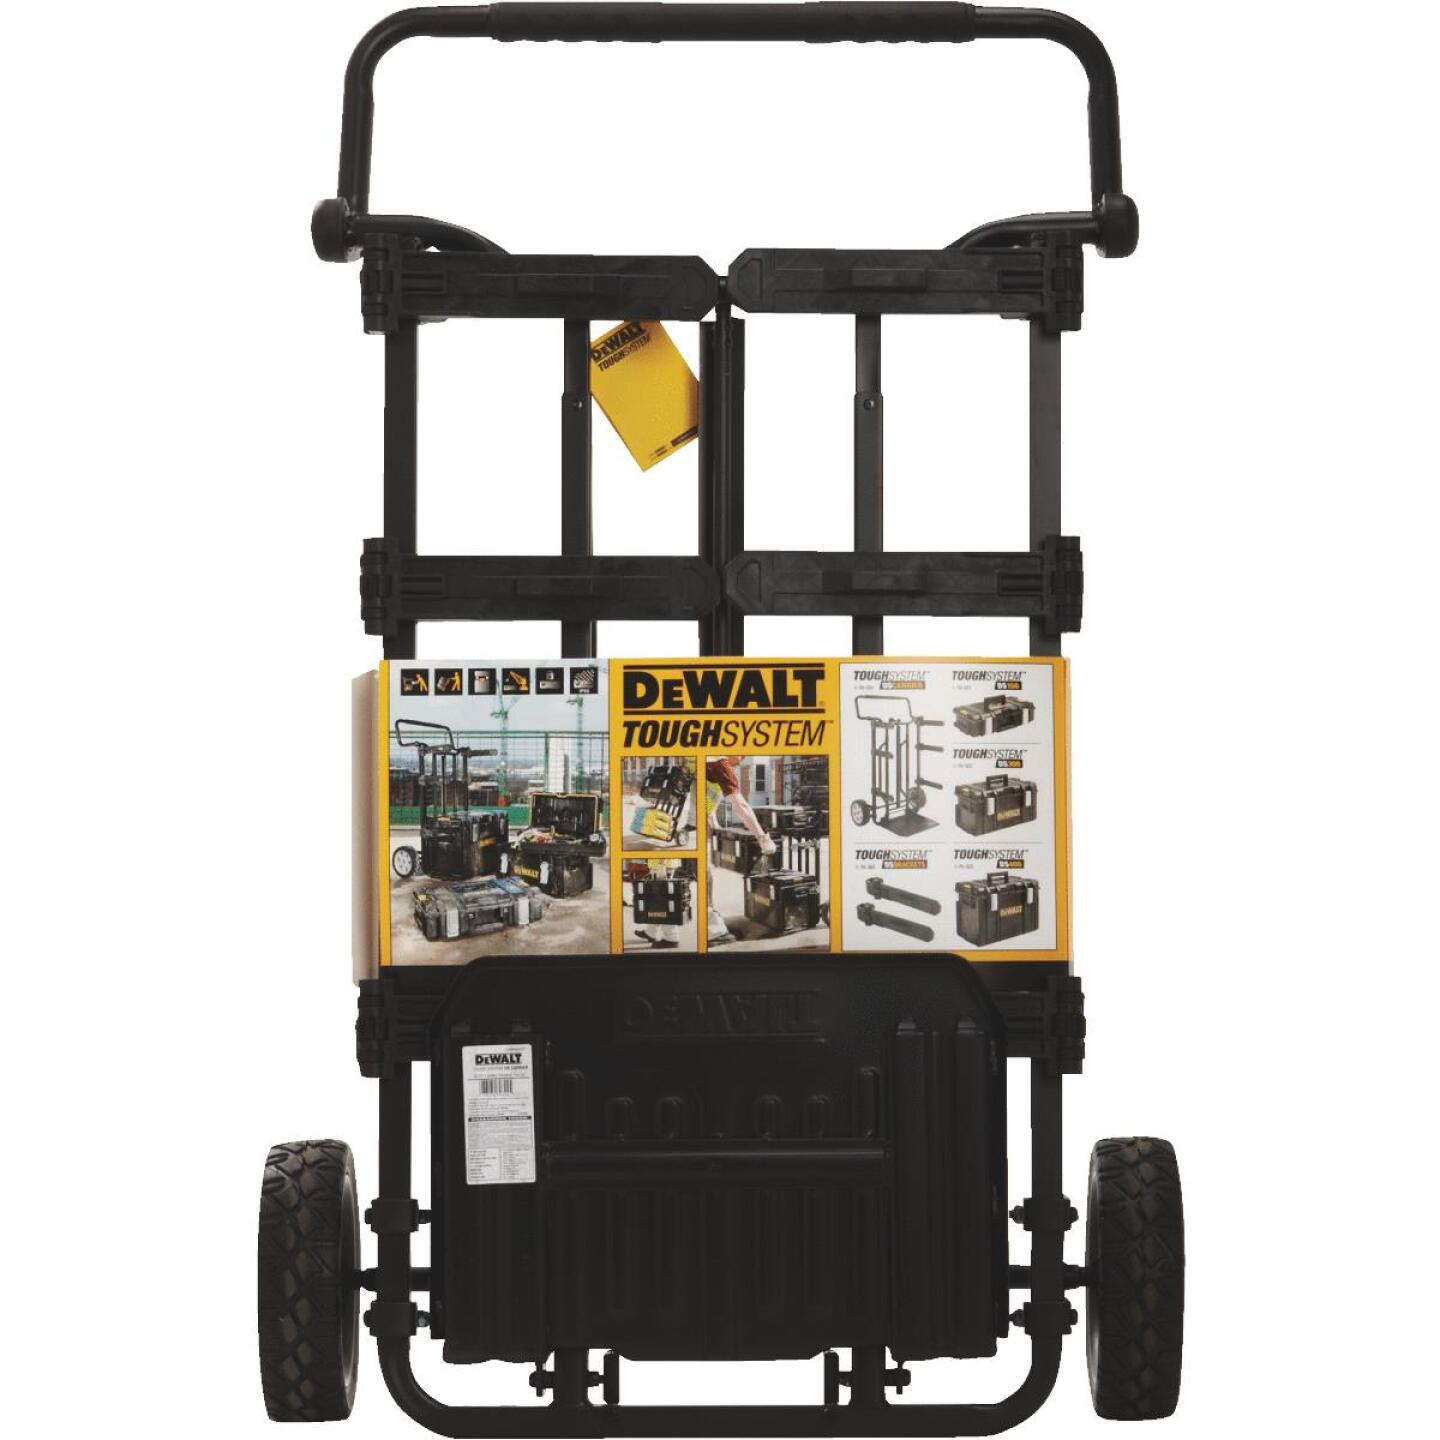 Dewalt ToughSystem 9 In. W x 37 In. H x 26 In. L DS Carrier Tool Cart Image 2